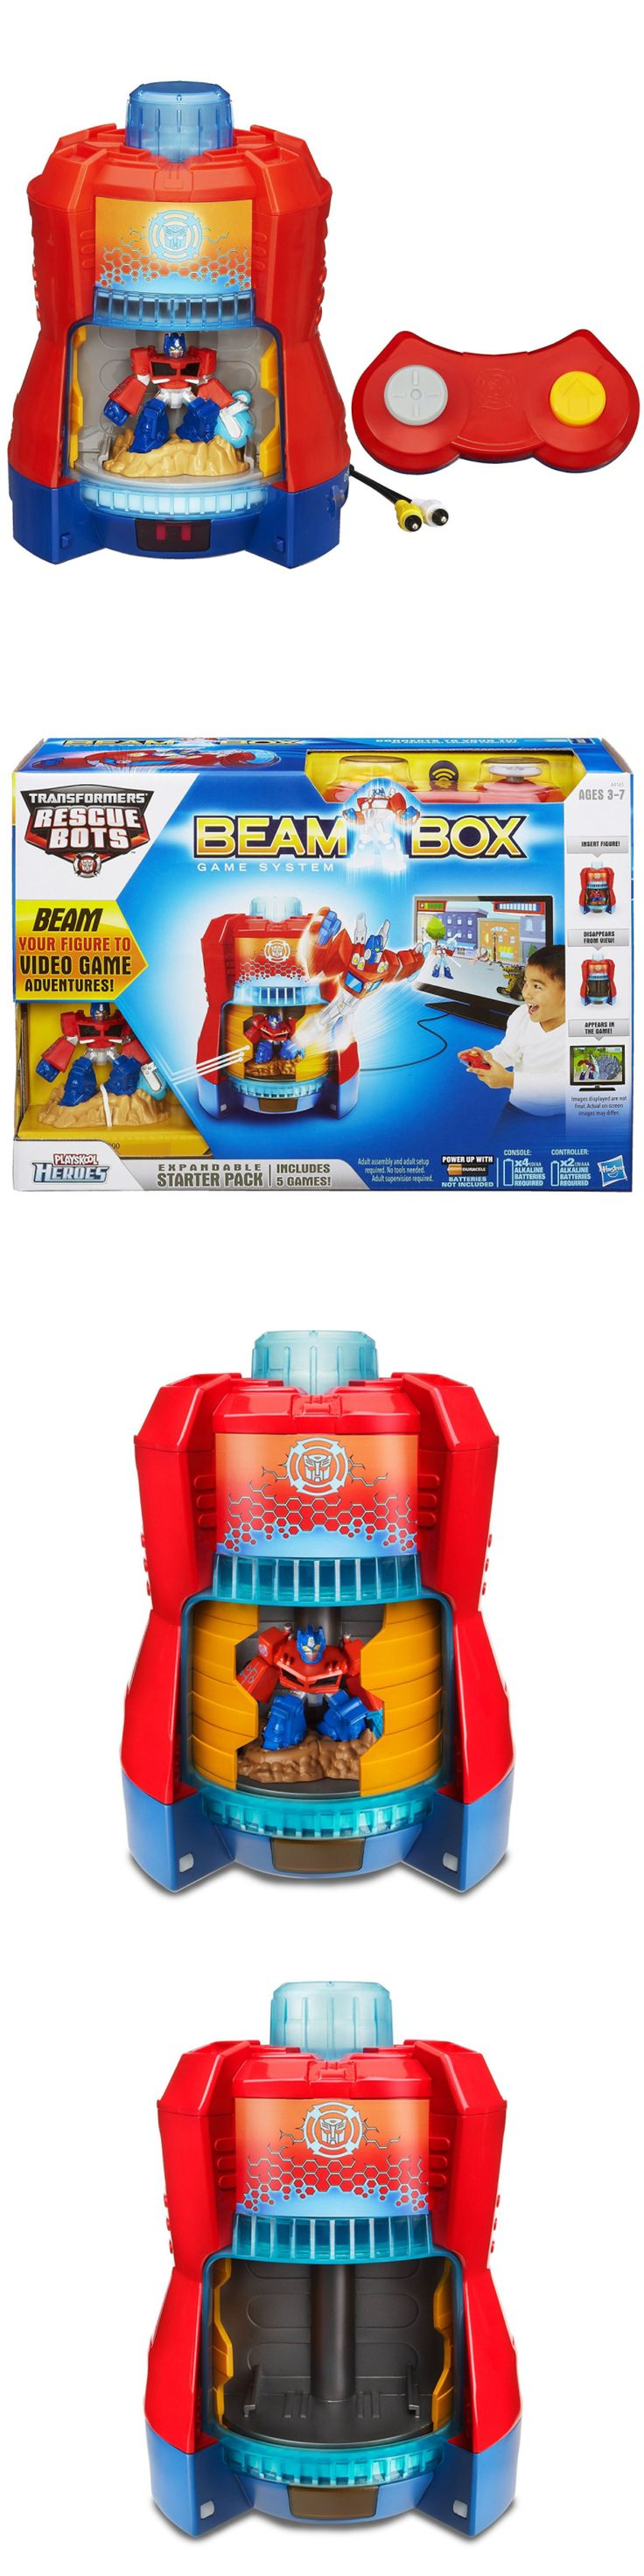 Rescue Heroes 50307: Playskool Heroes Transformers Rescue Bots Beam Box Game System -> BUY IT NOW ONLY: $37.5 on eBay!